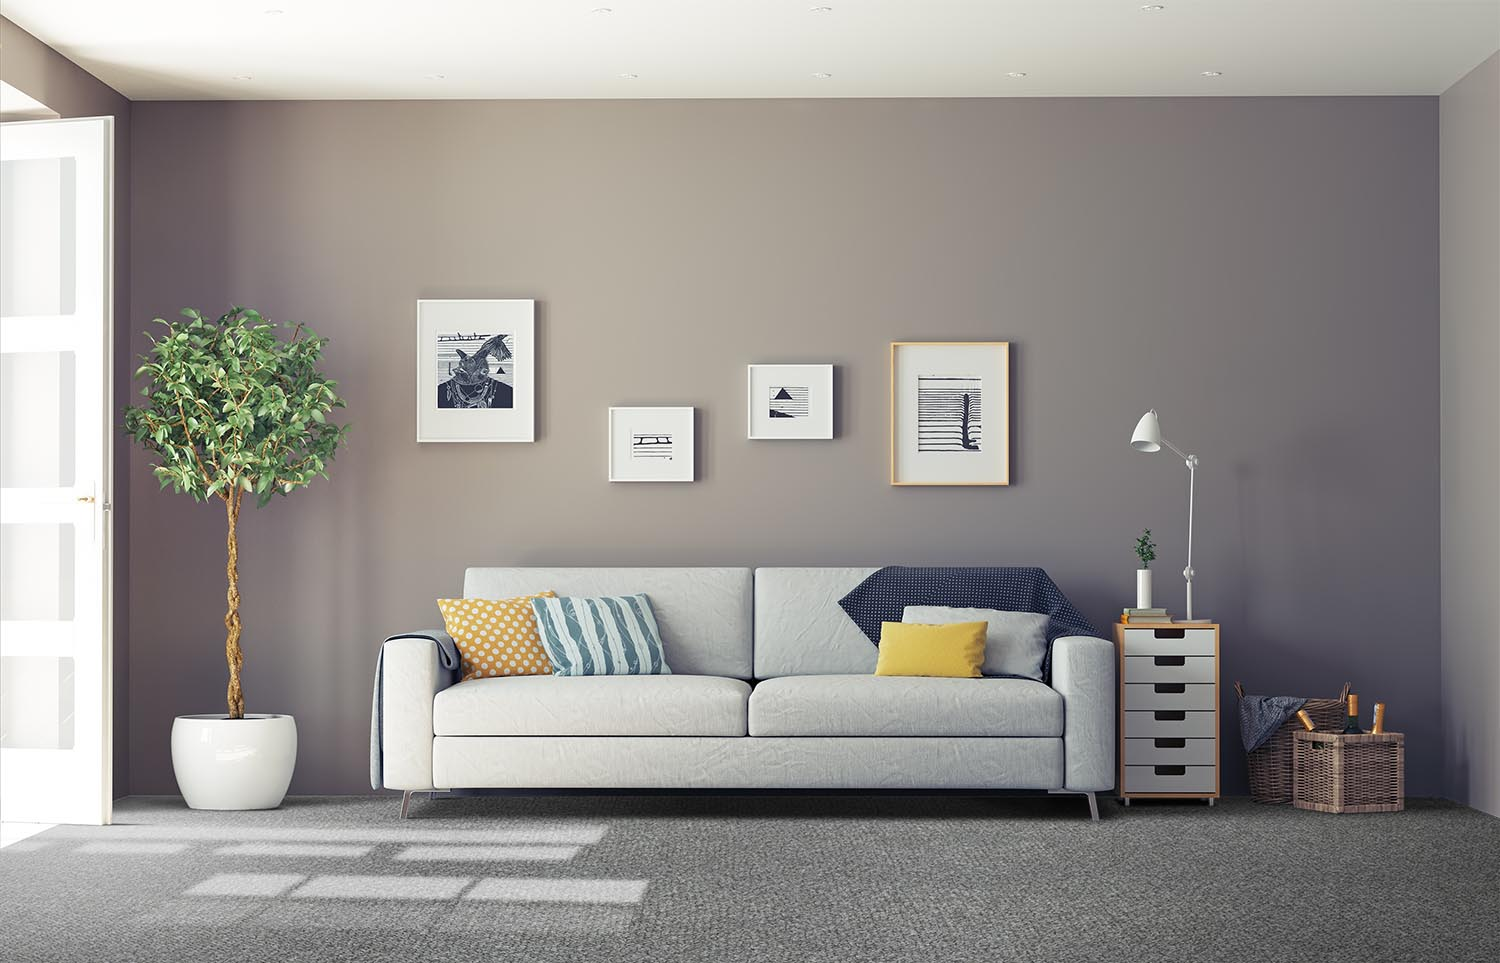 Immerse - Plunged classic living room